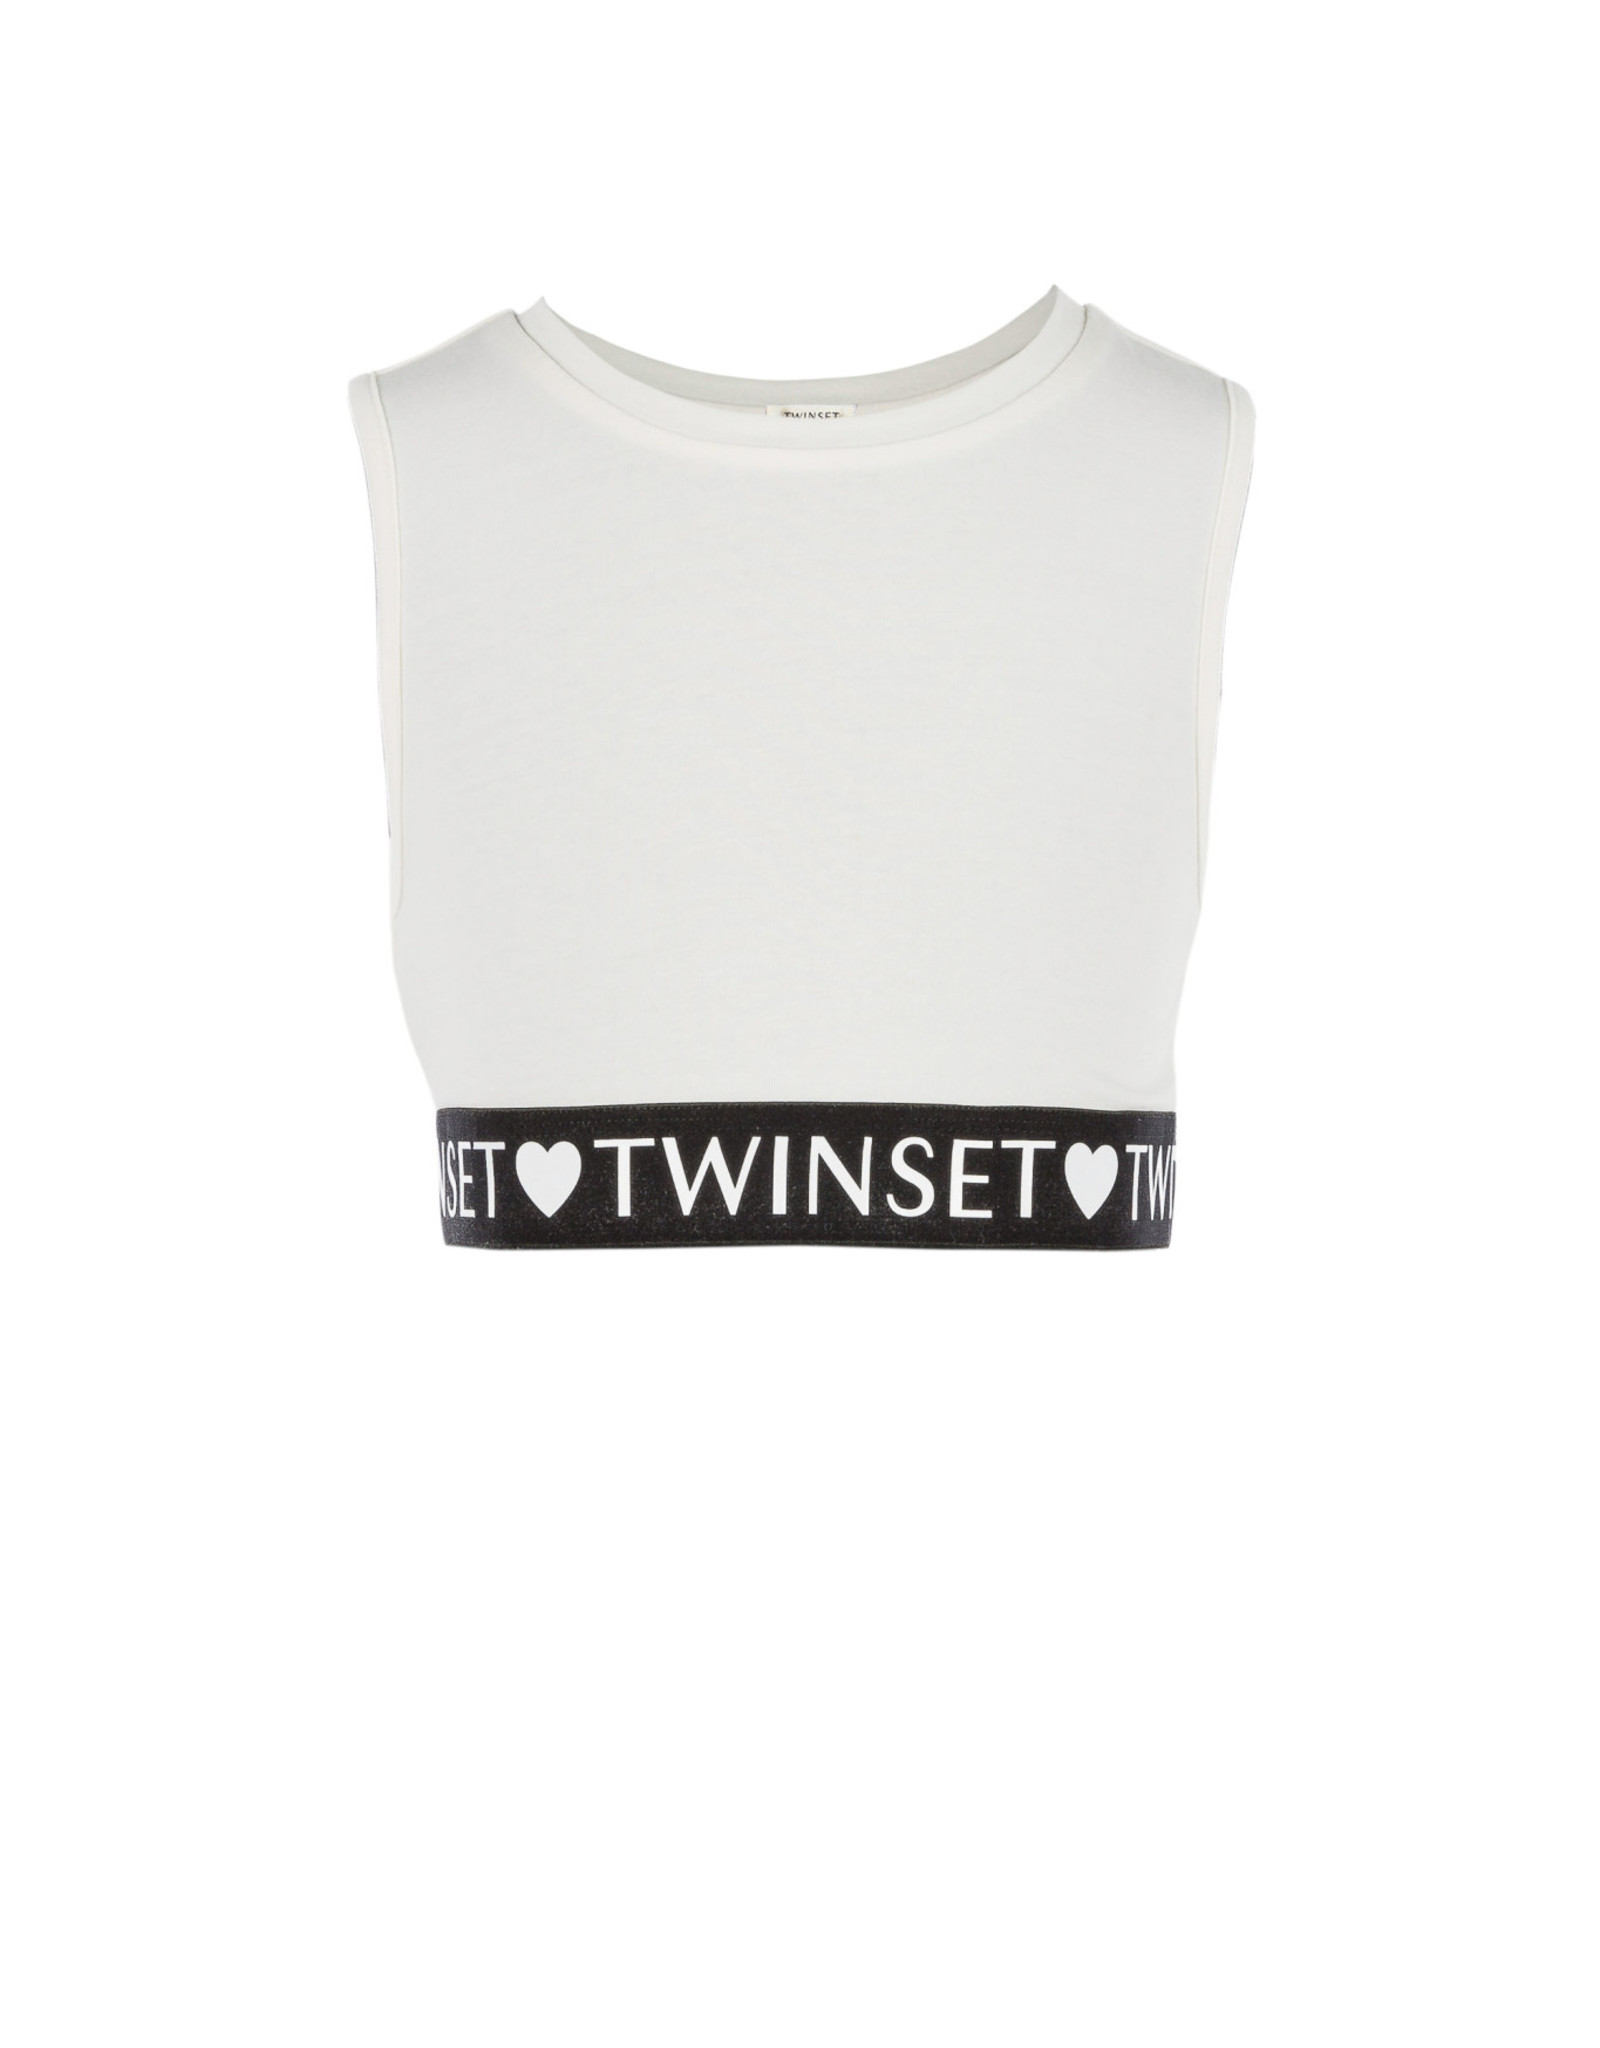 TWIN SET TWIN SET Crop top